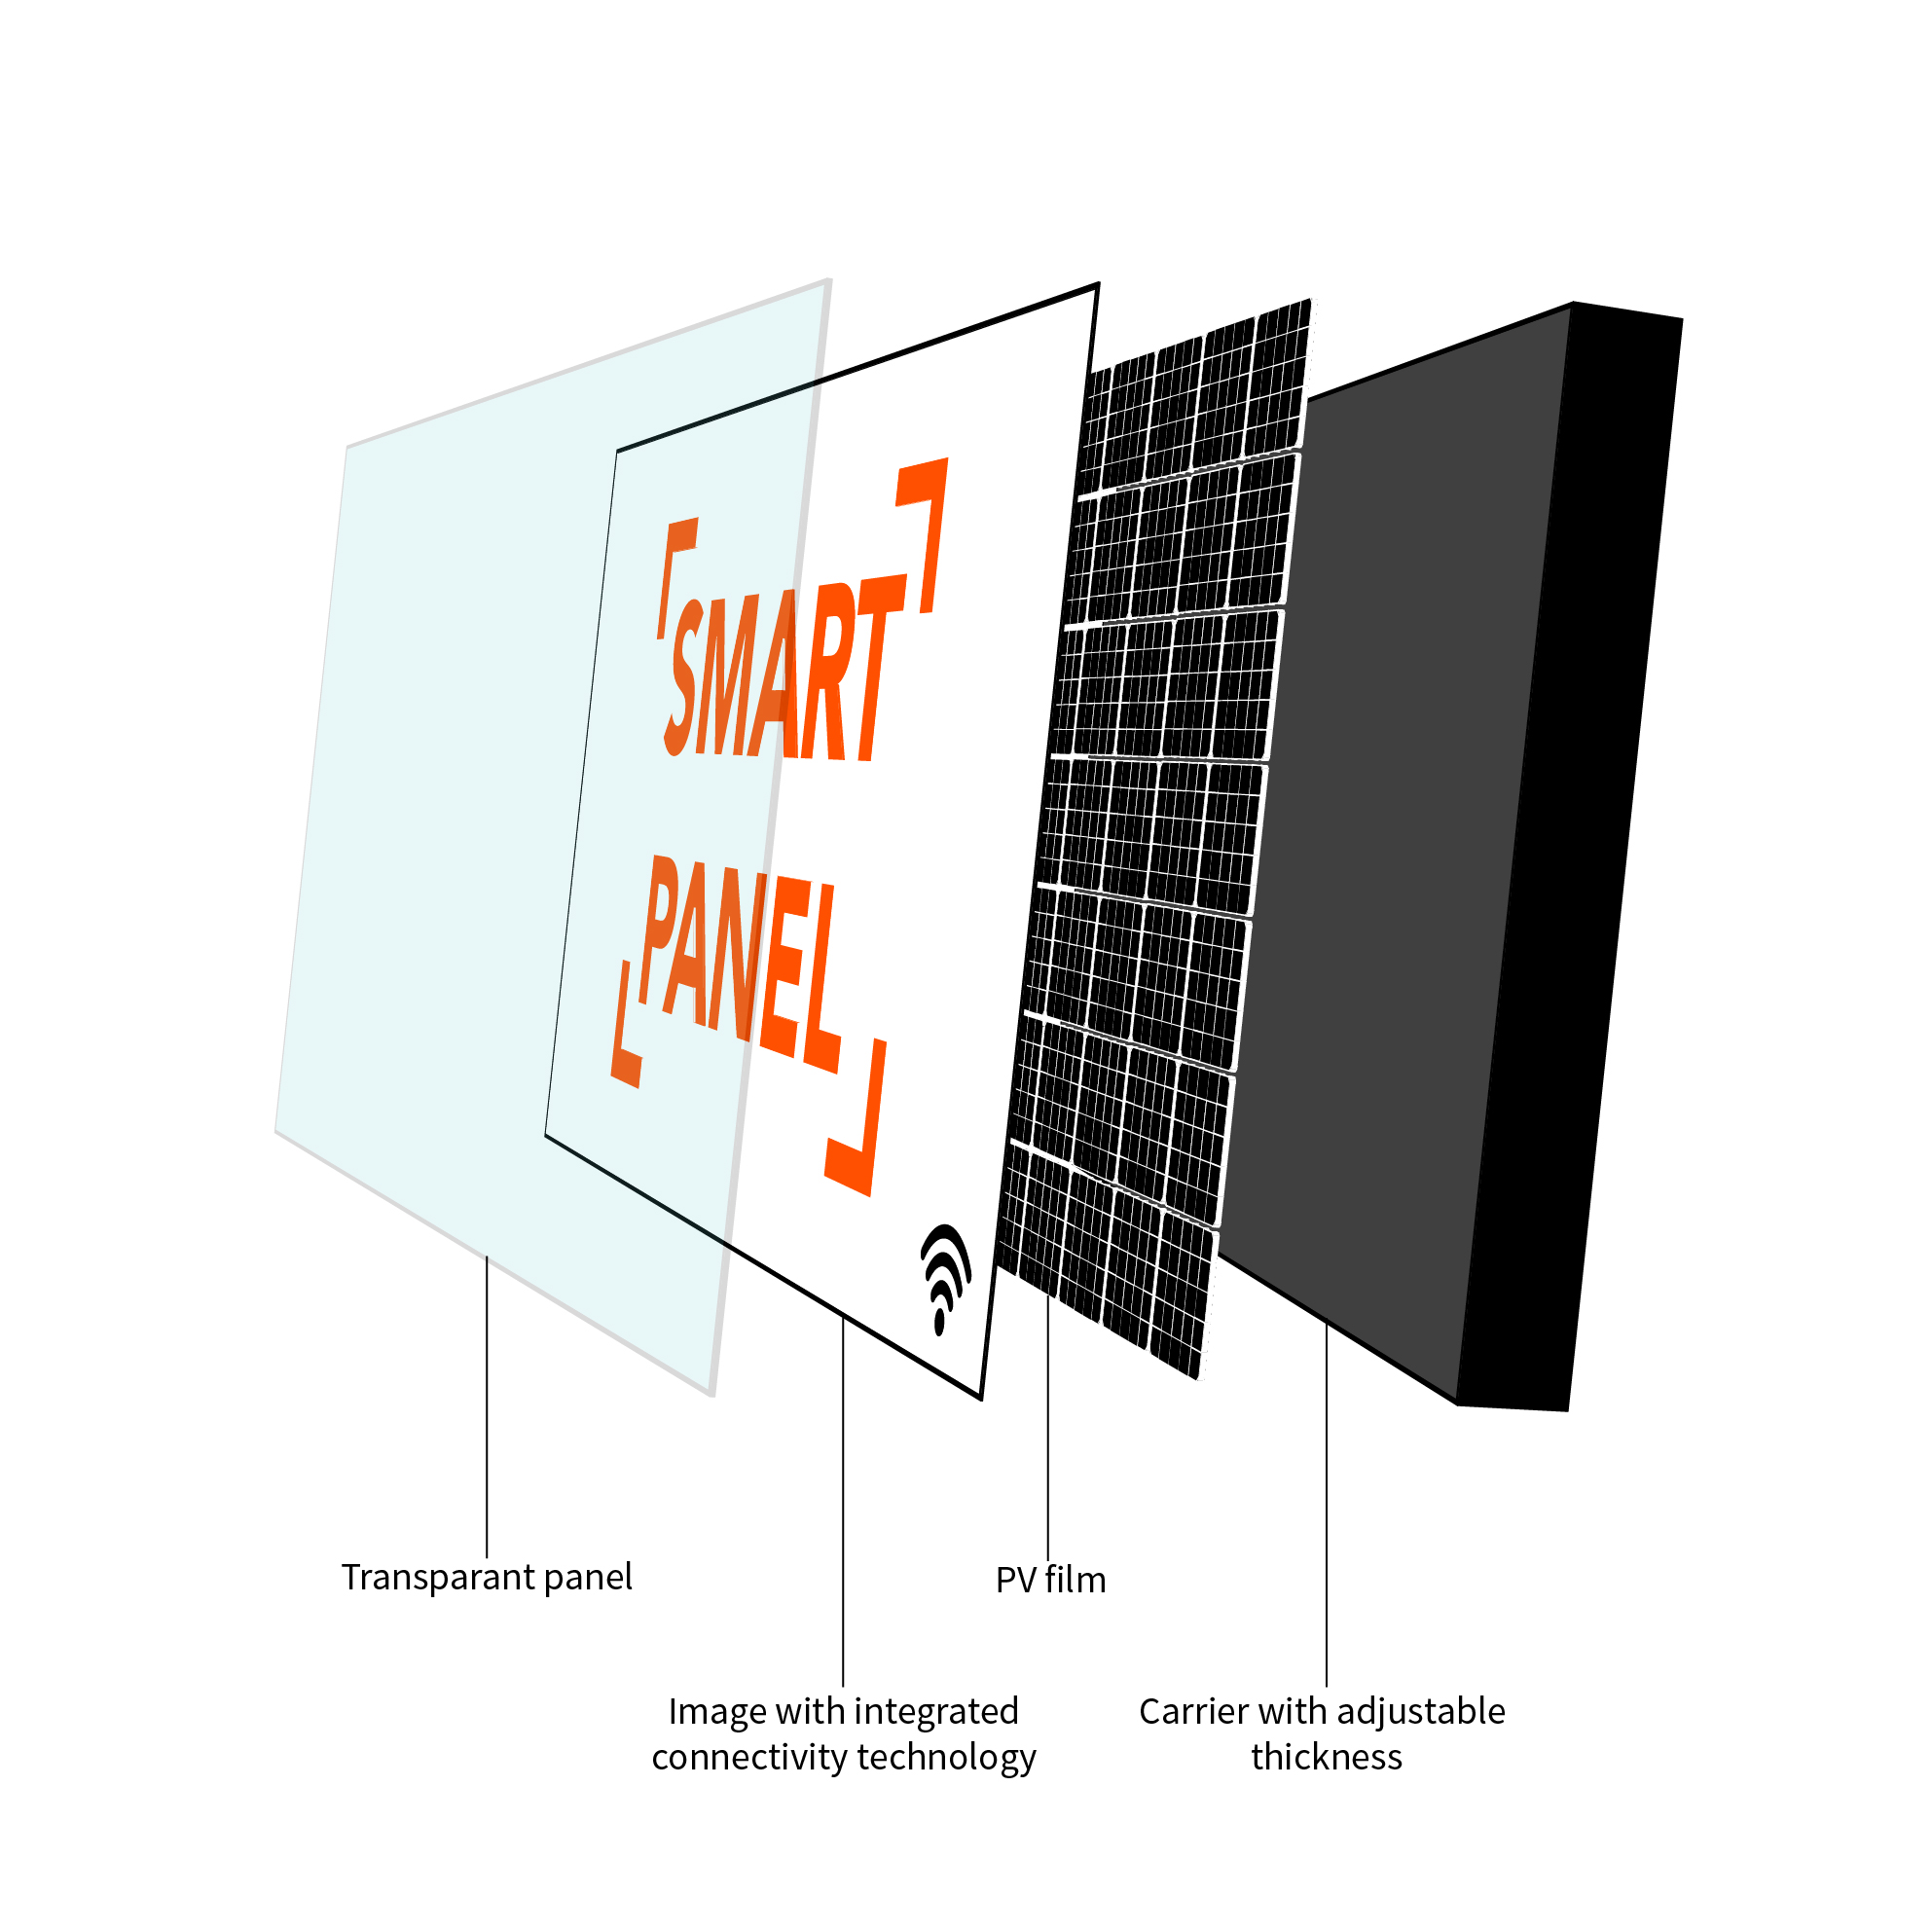 A schematic representation of the Smart Panel